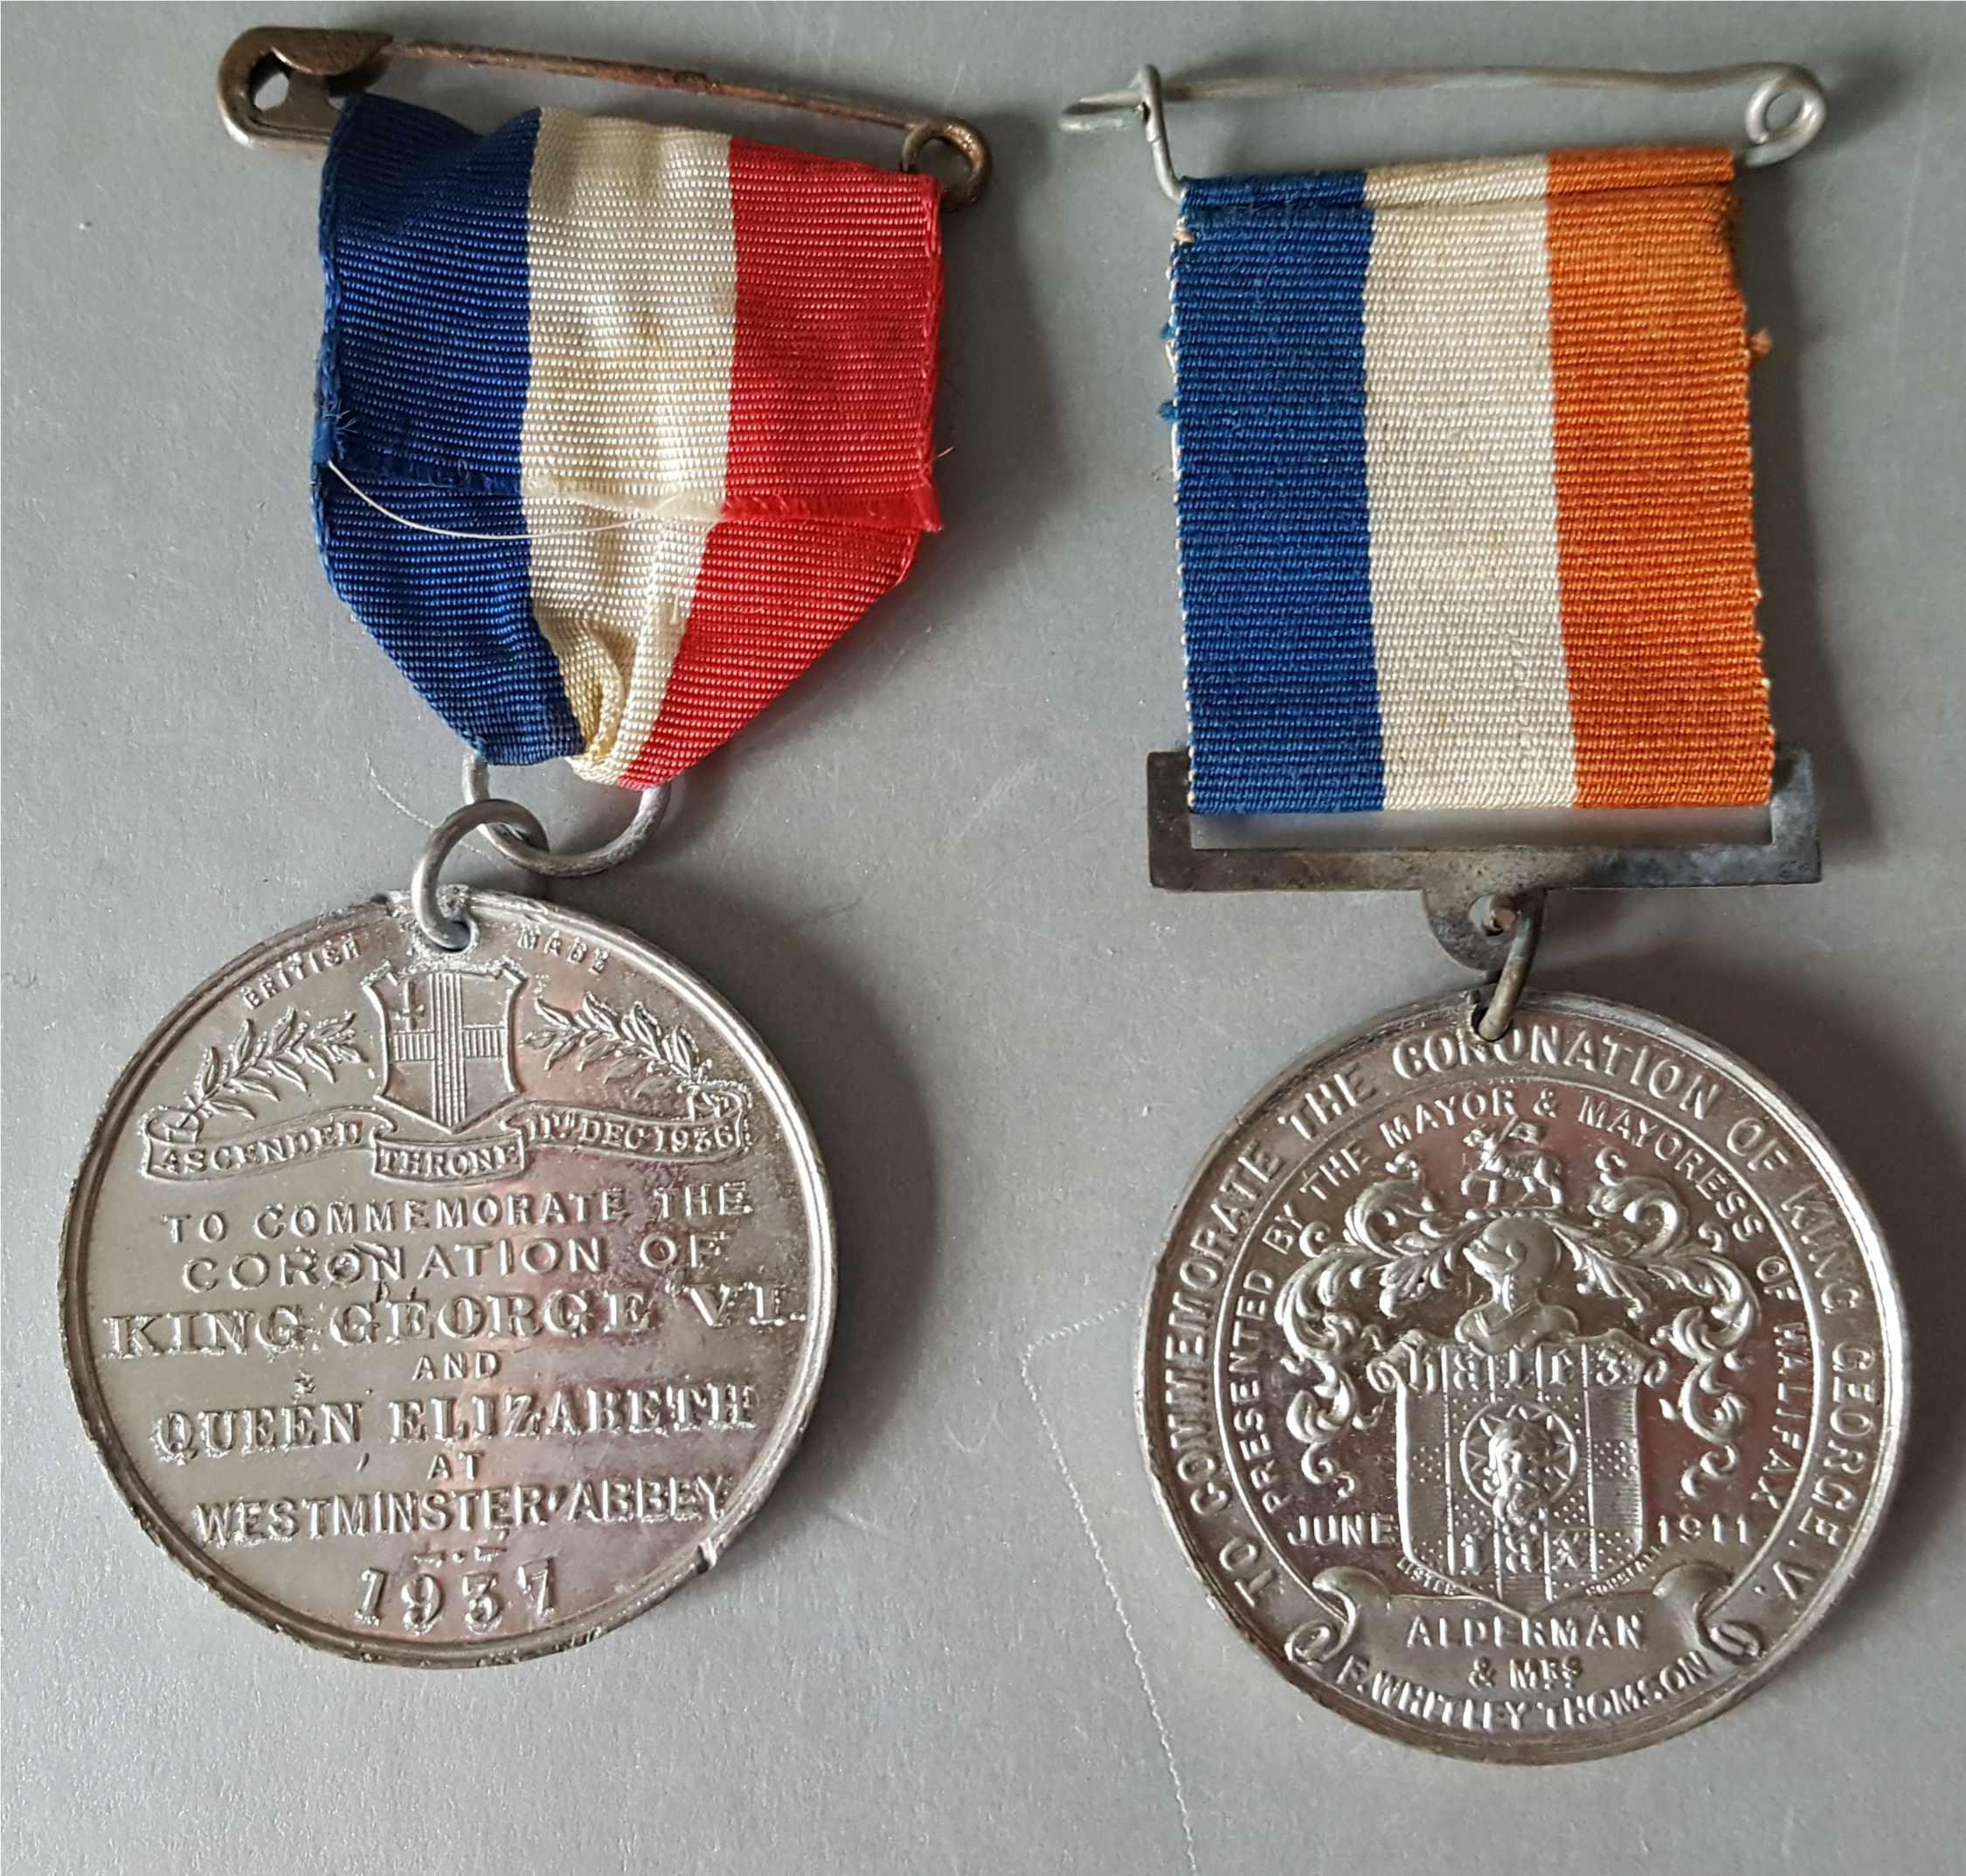 Lot 17 - Vintage Medals Commemorative Coronation of King George V 1911 & King George VI 1937 NO RESERVE